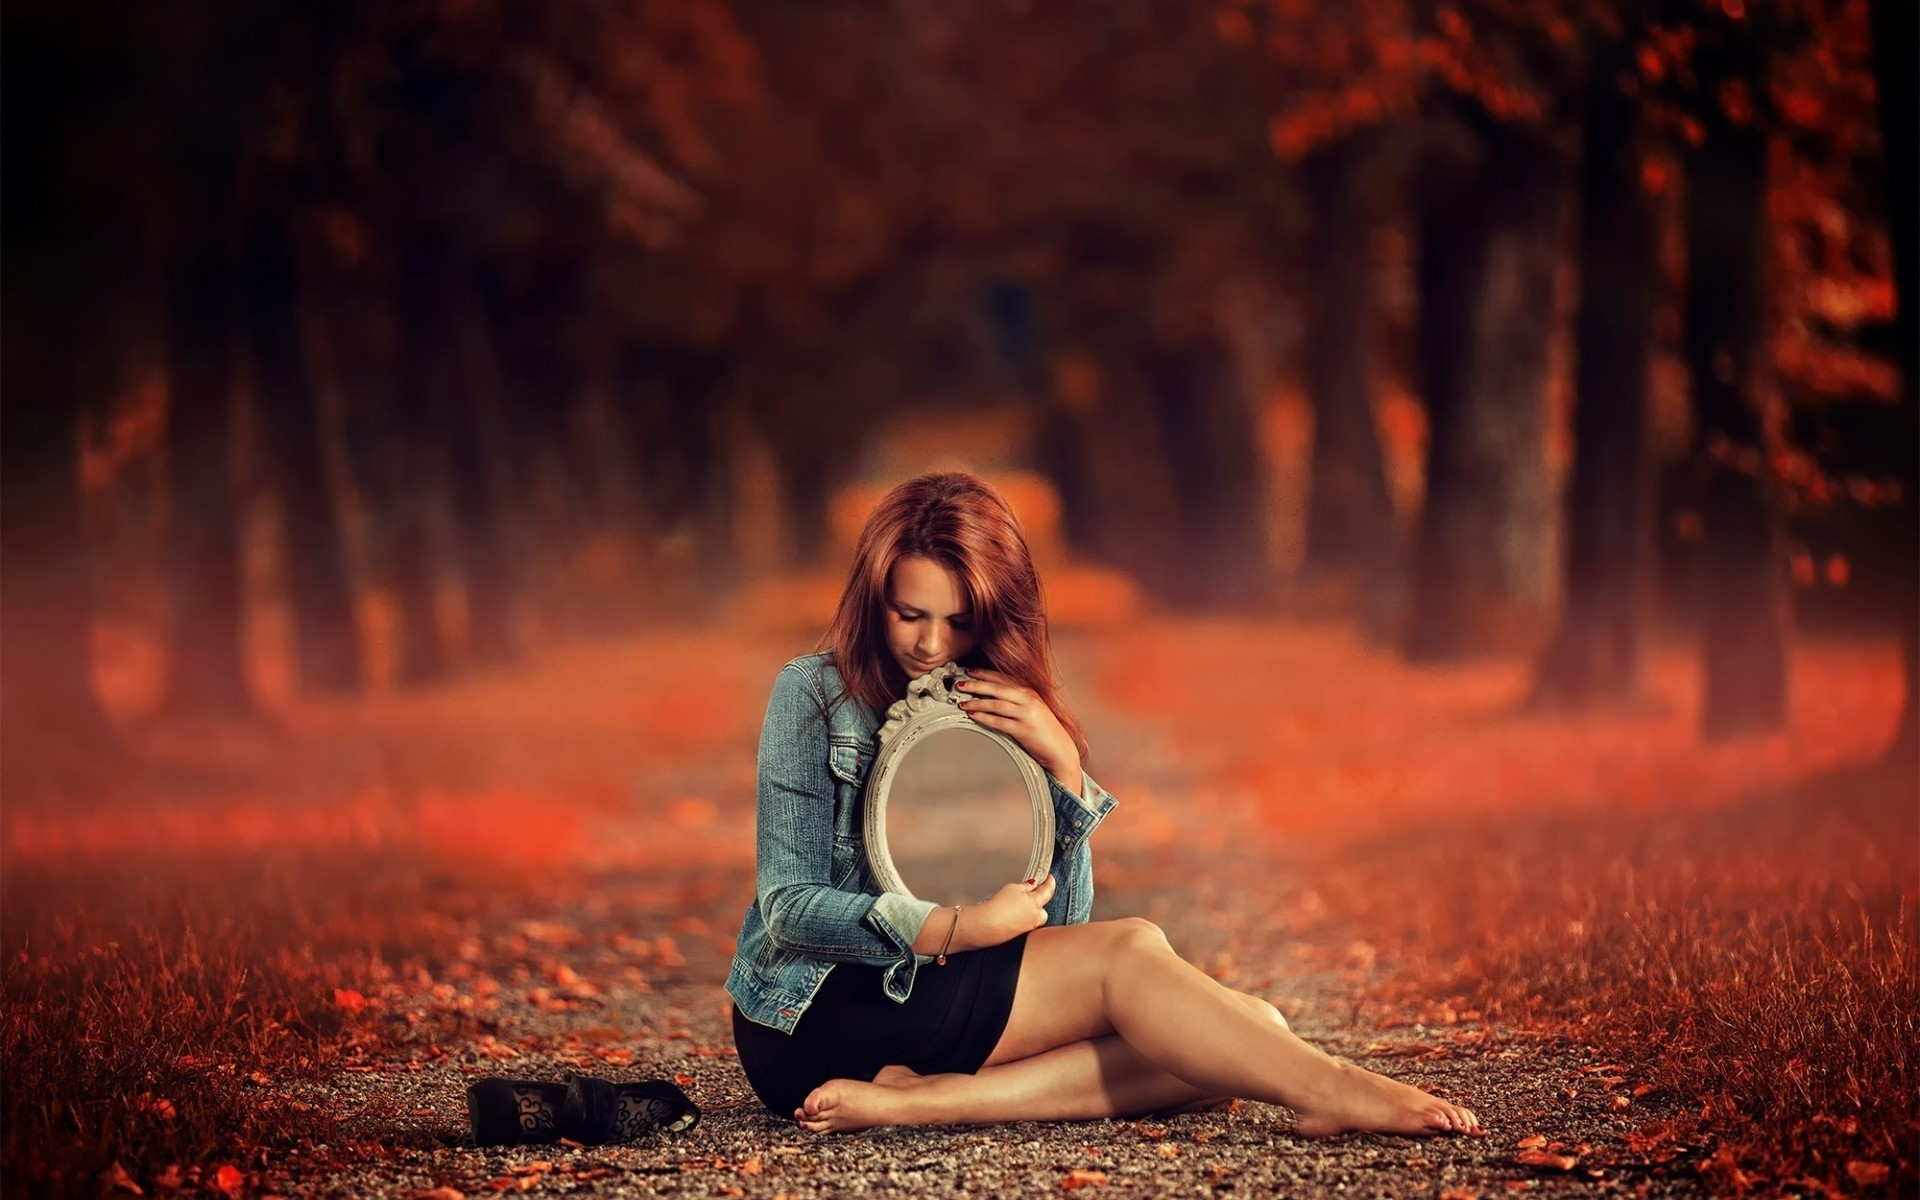 autumn girl nature fall woman sunset portrait one park outdoors mirror landscape